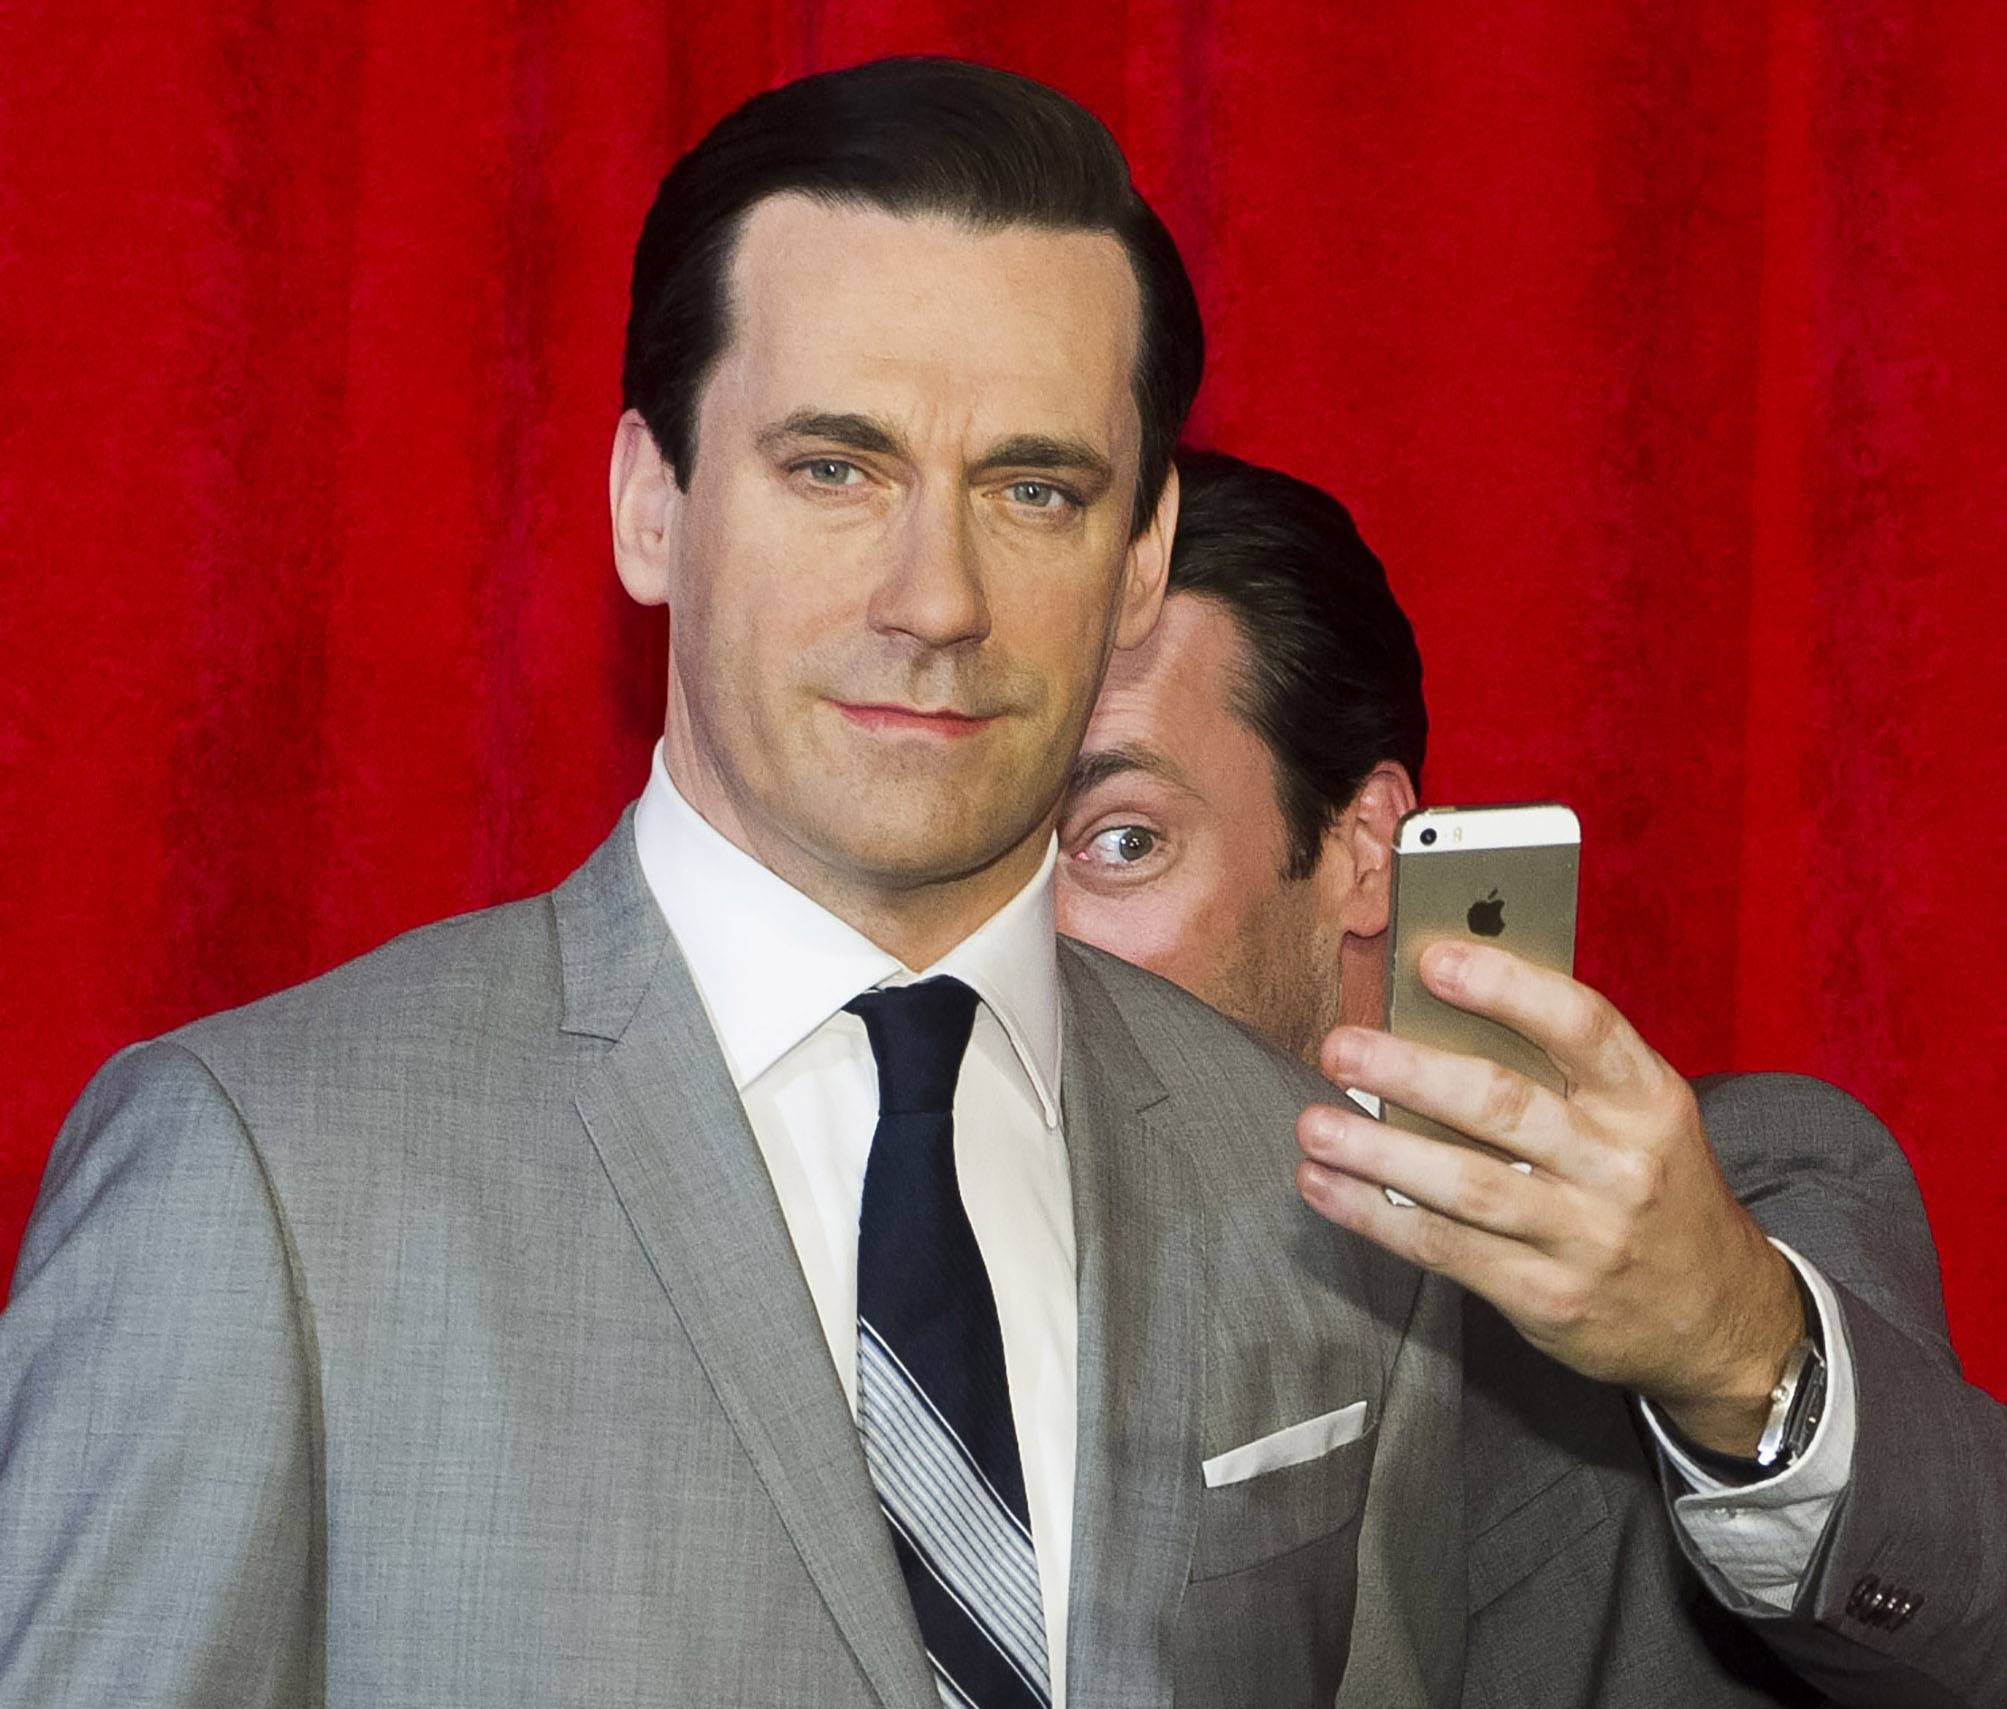 Actor Jon Hamm takes a selfie at the unveiling of his wax figure recently at Madame Tussauds in New York. Selfie is one of the 150 new words appearing in Merriam-Webster's Collegiate Dictionary and the company's free online database.